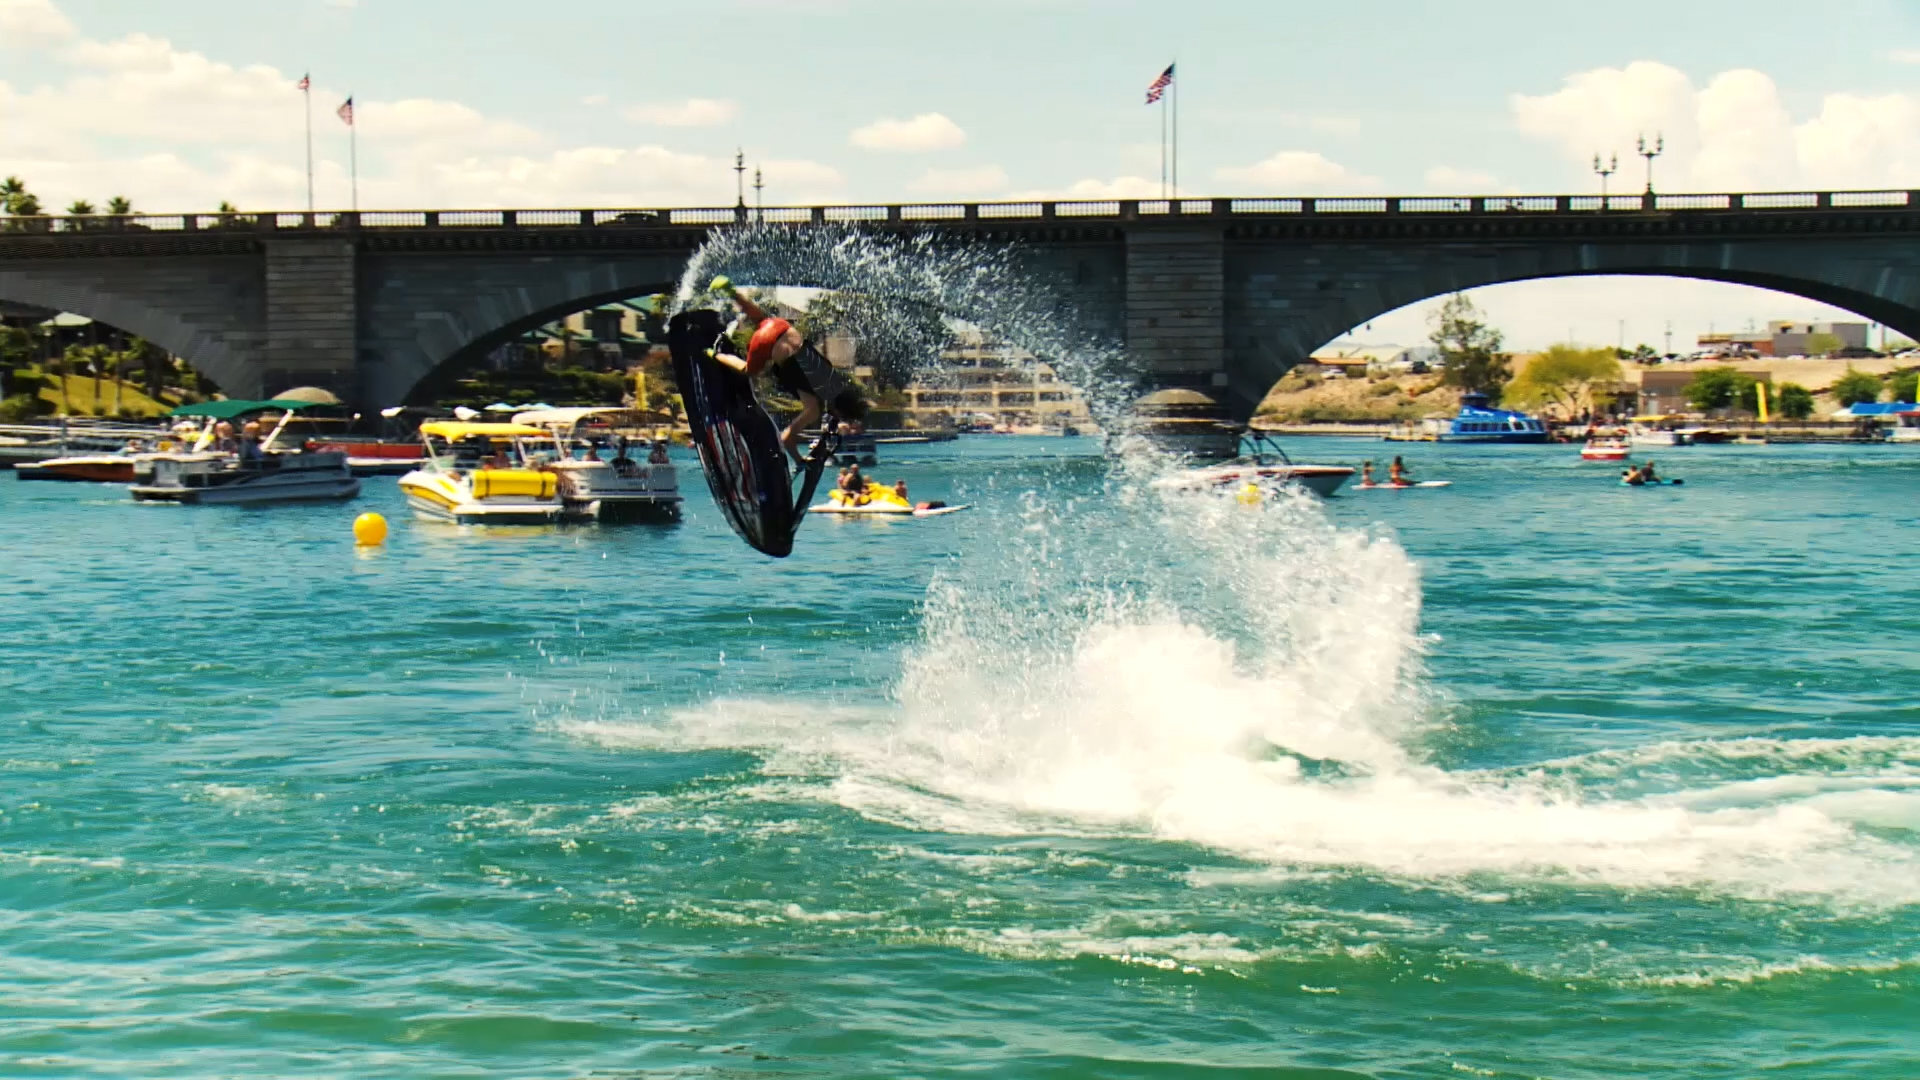 video-teaser-for-fall-round-of-2019-p1-racing-fuels-u-s-freestyle-championship-september-28th-lake-havasu-city-arizona